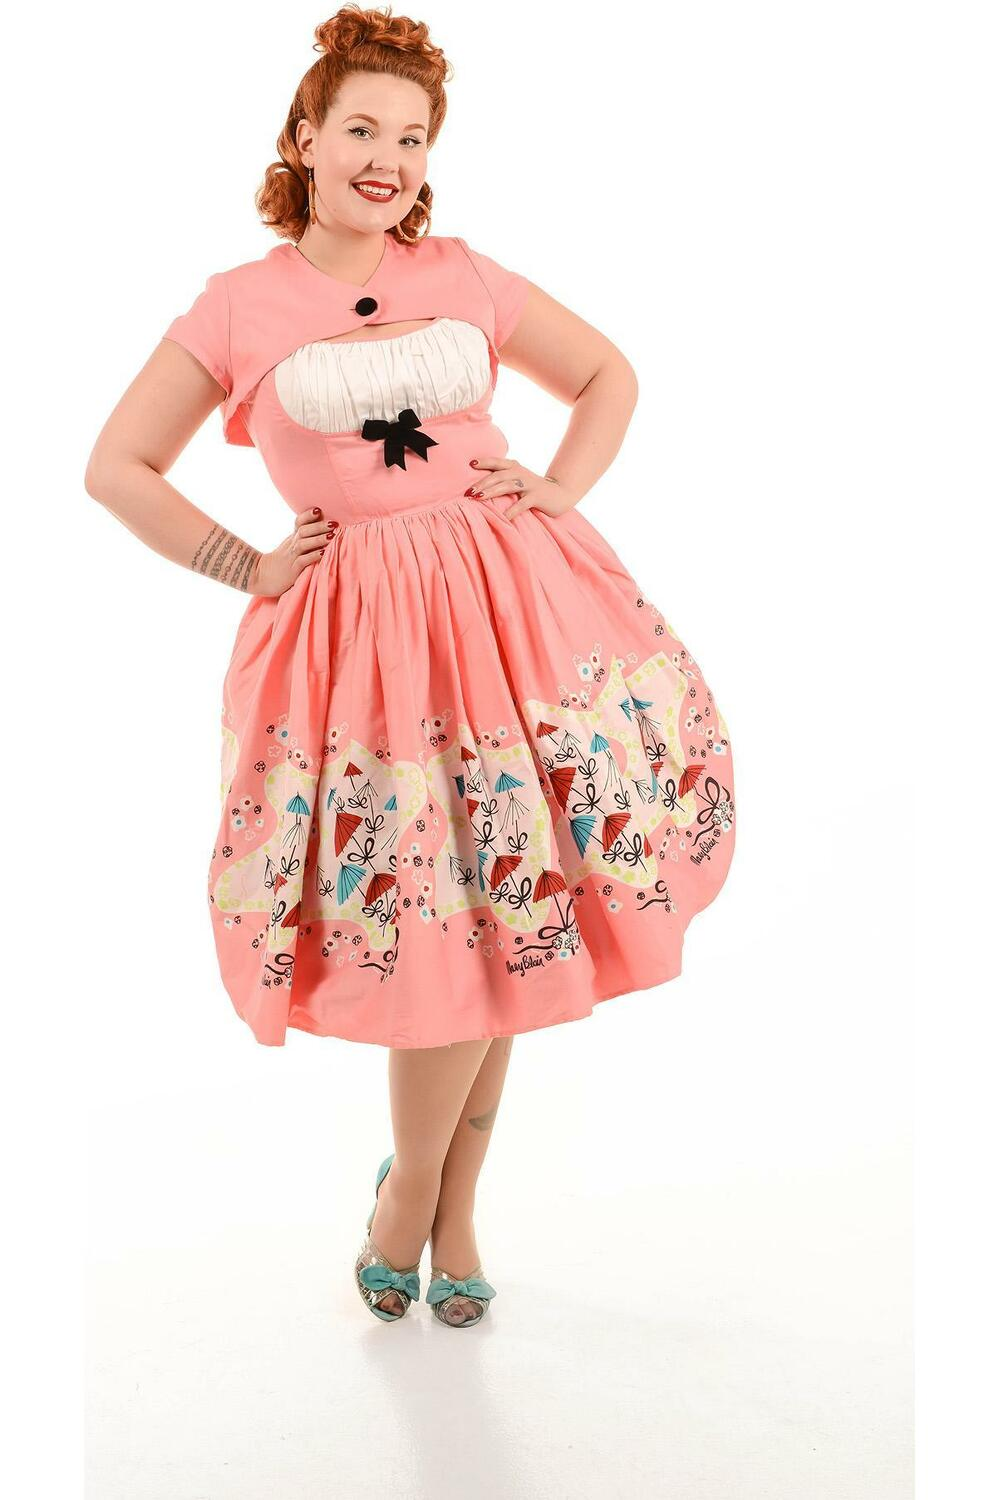 Pinup Girl Clothing Evelyn Umbrellas Kjole Rosa/hvit